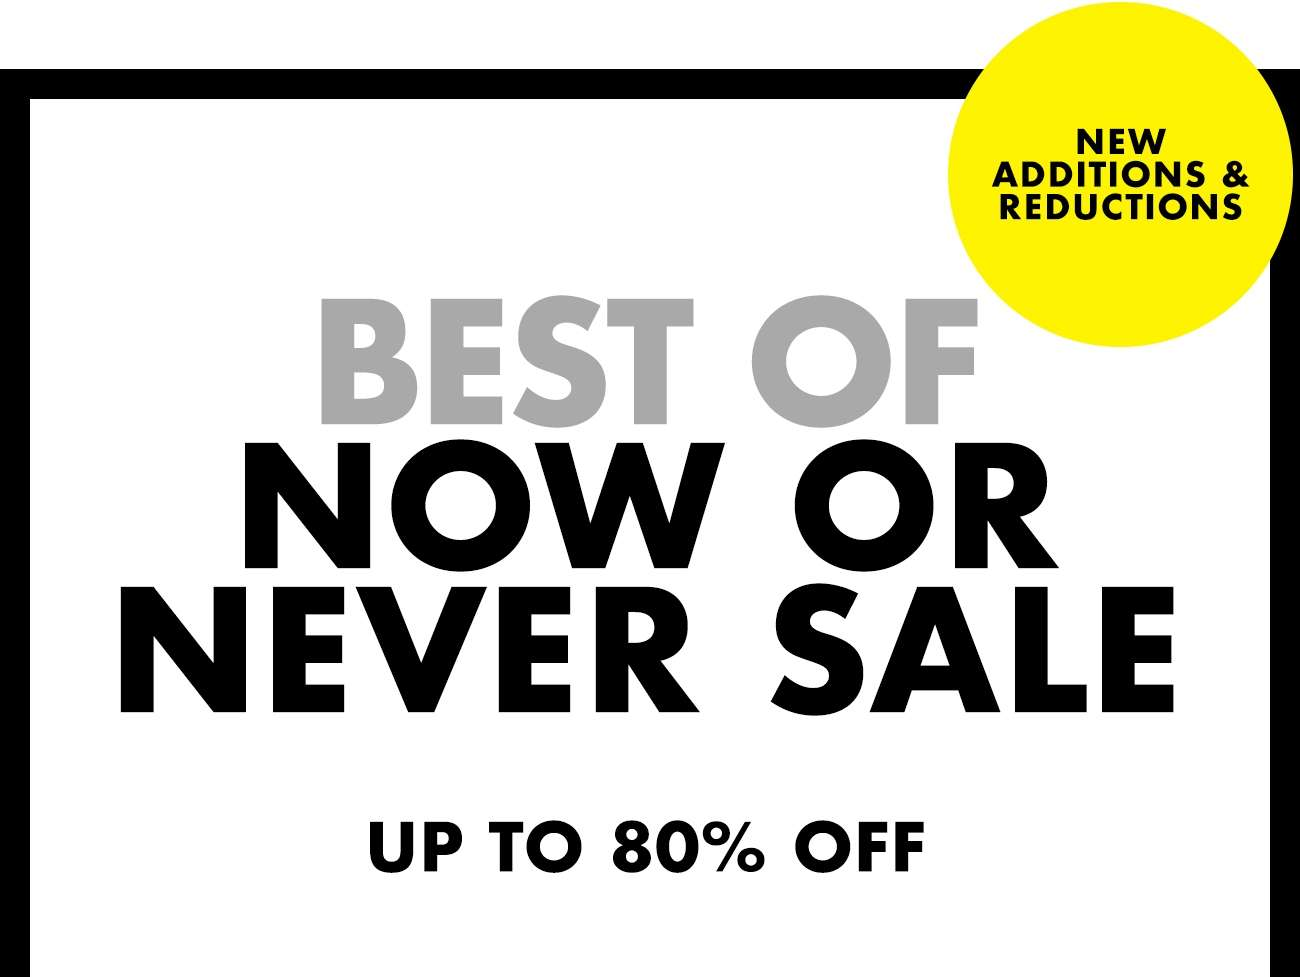 NOW OR NEVER SALE - UP TO 80% OFF